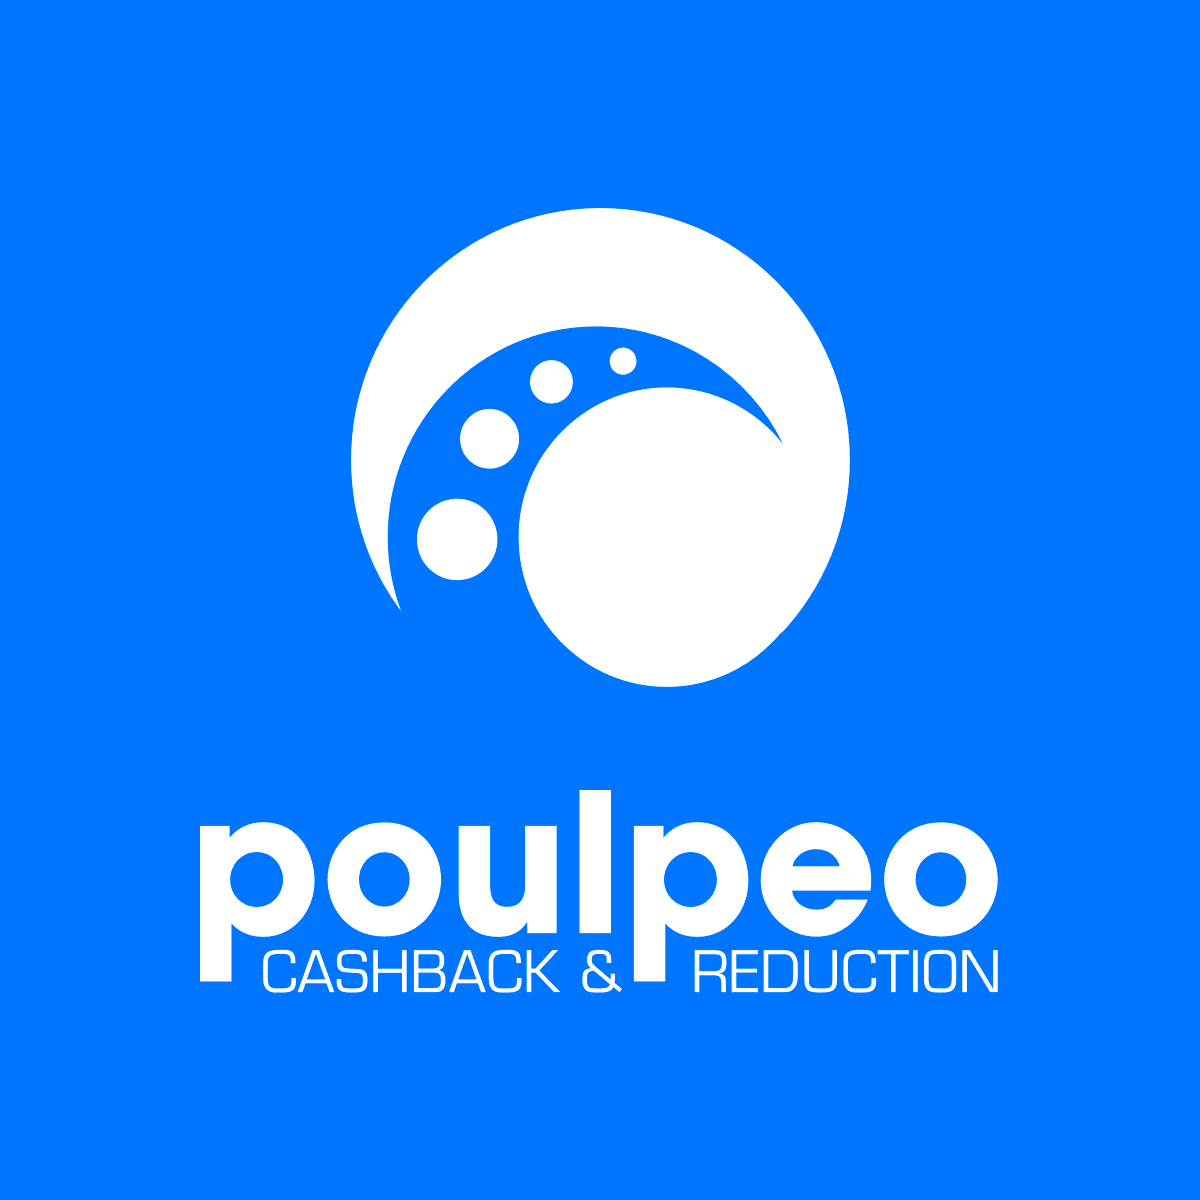 cashback reductions codes promo poulpeo